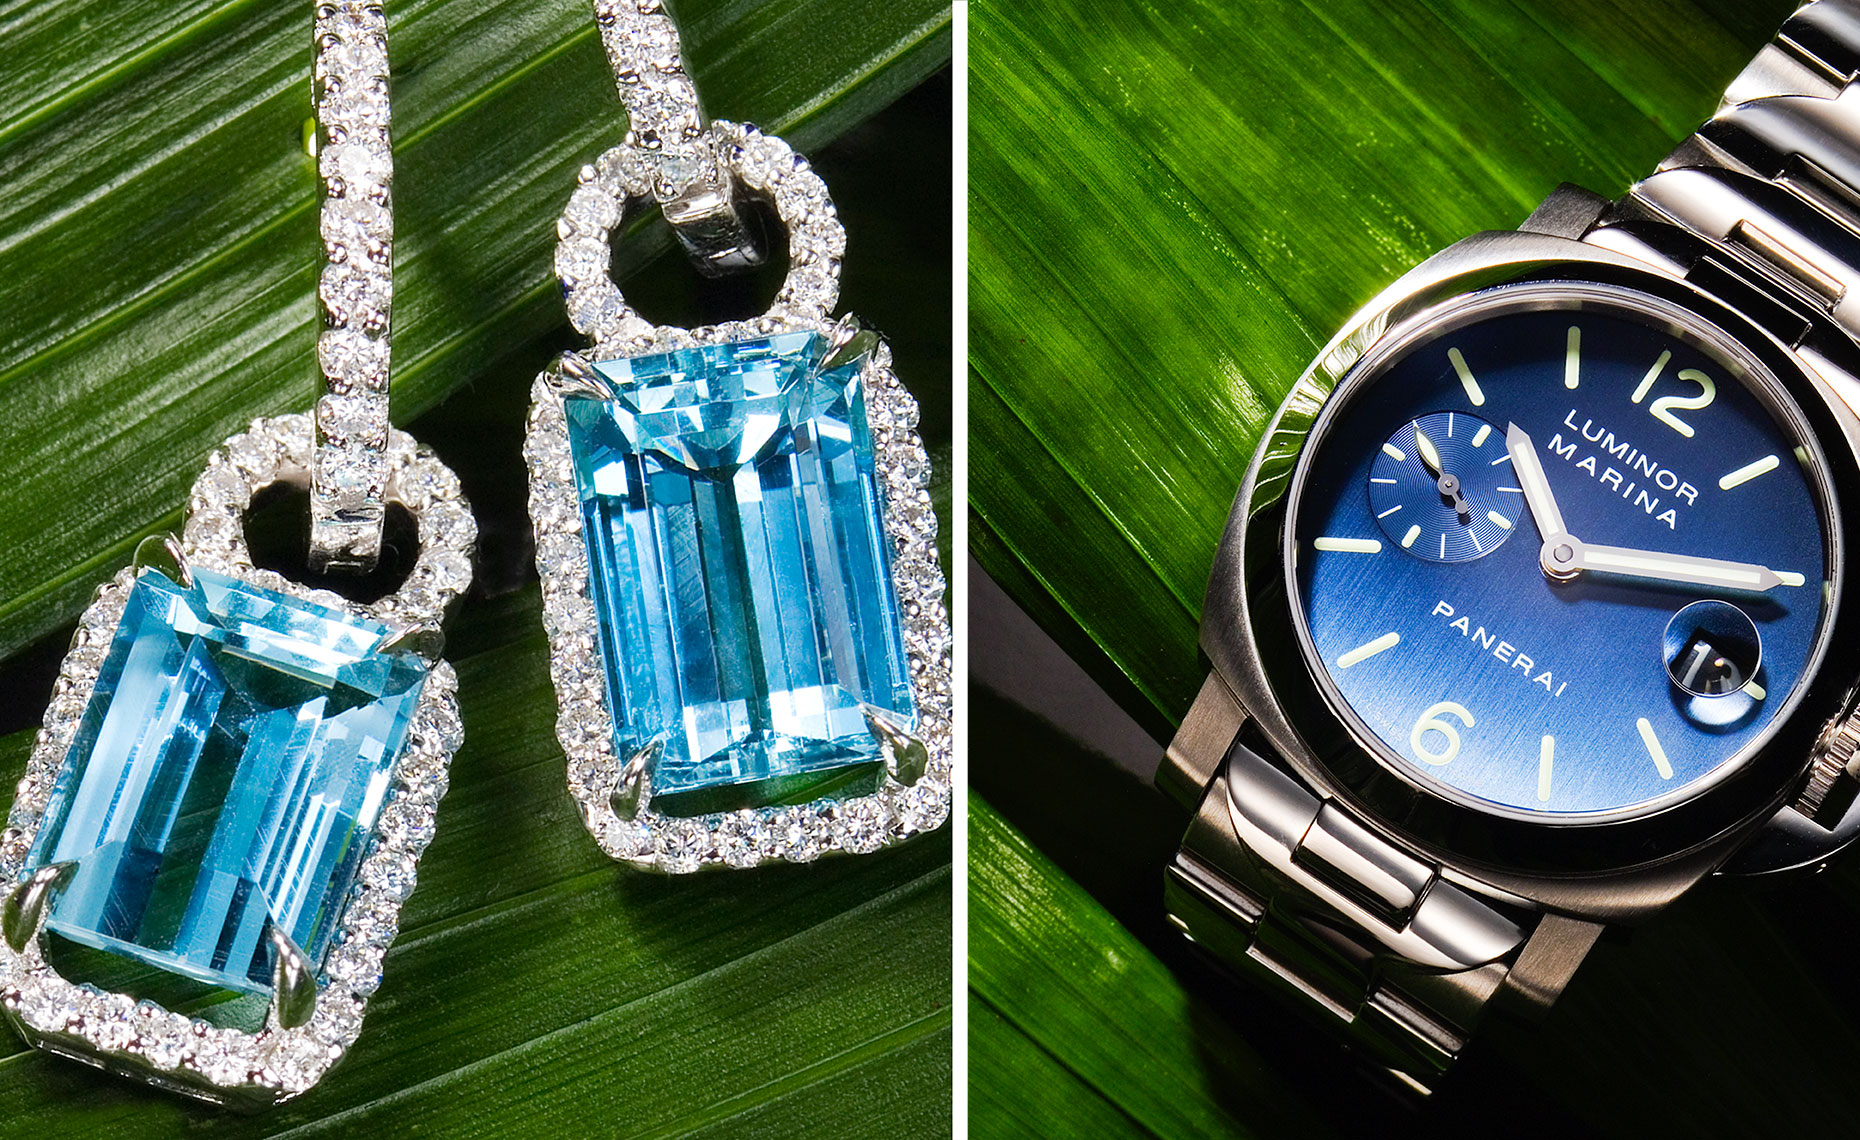 Blue earrings and watches on green grass background